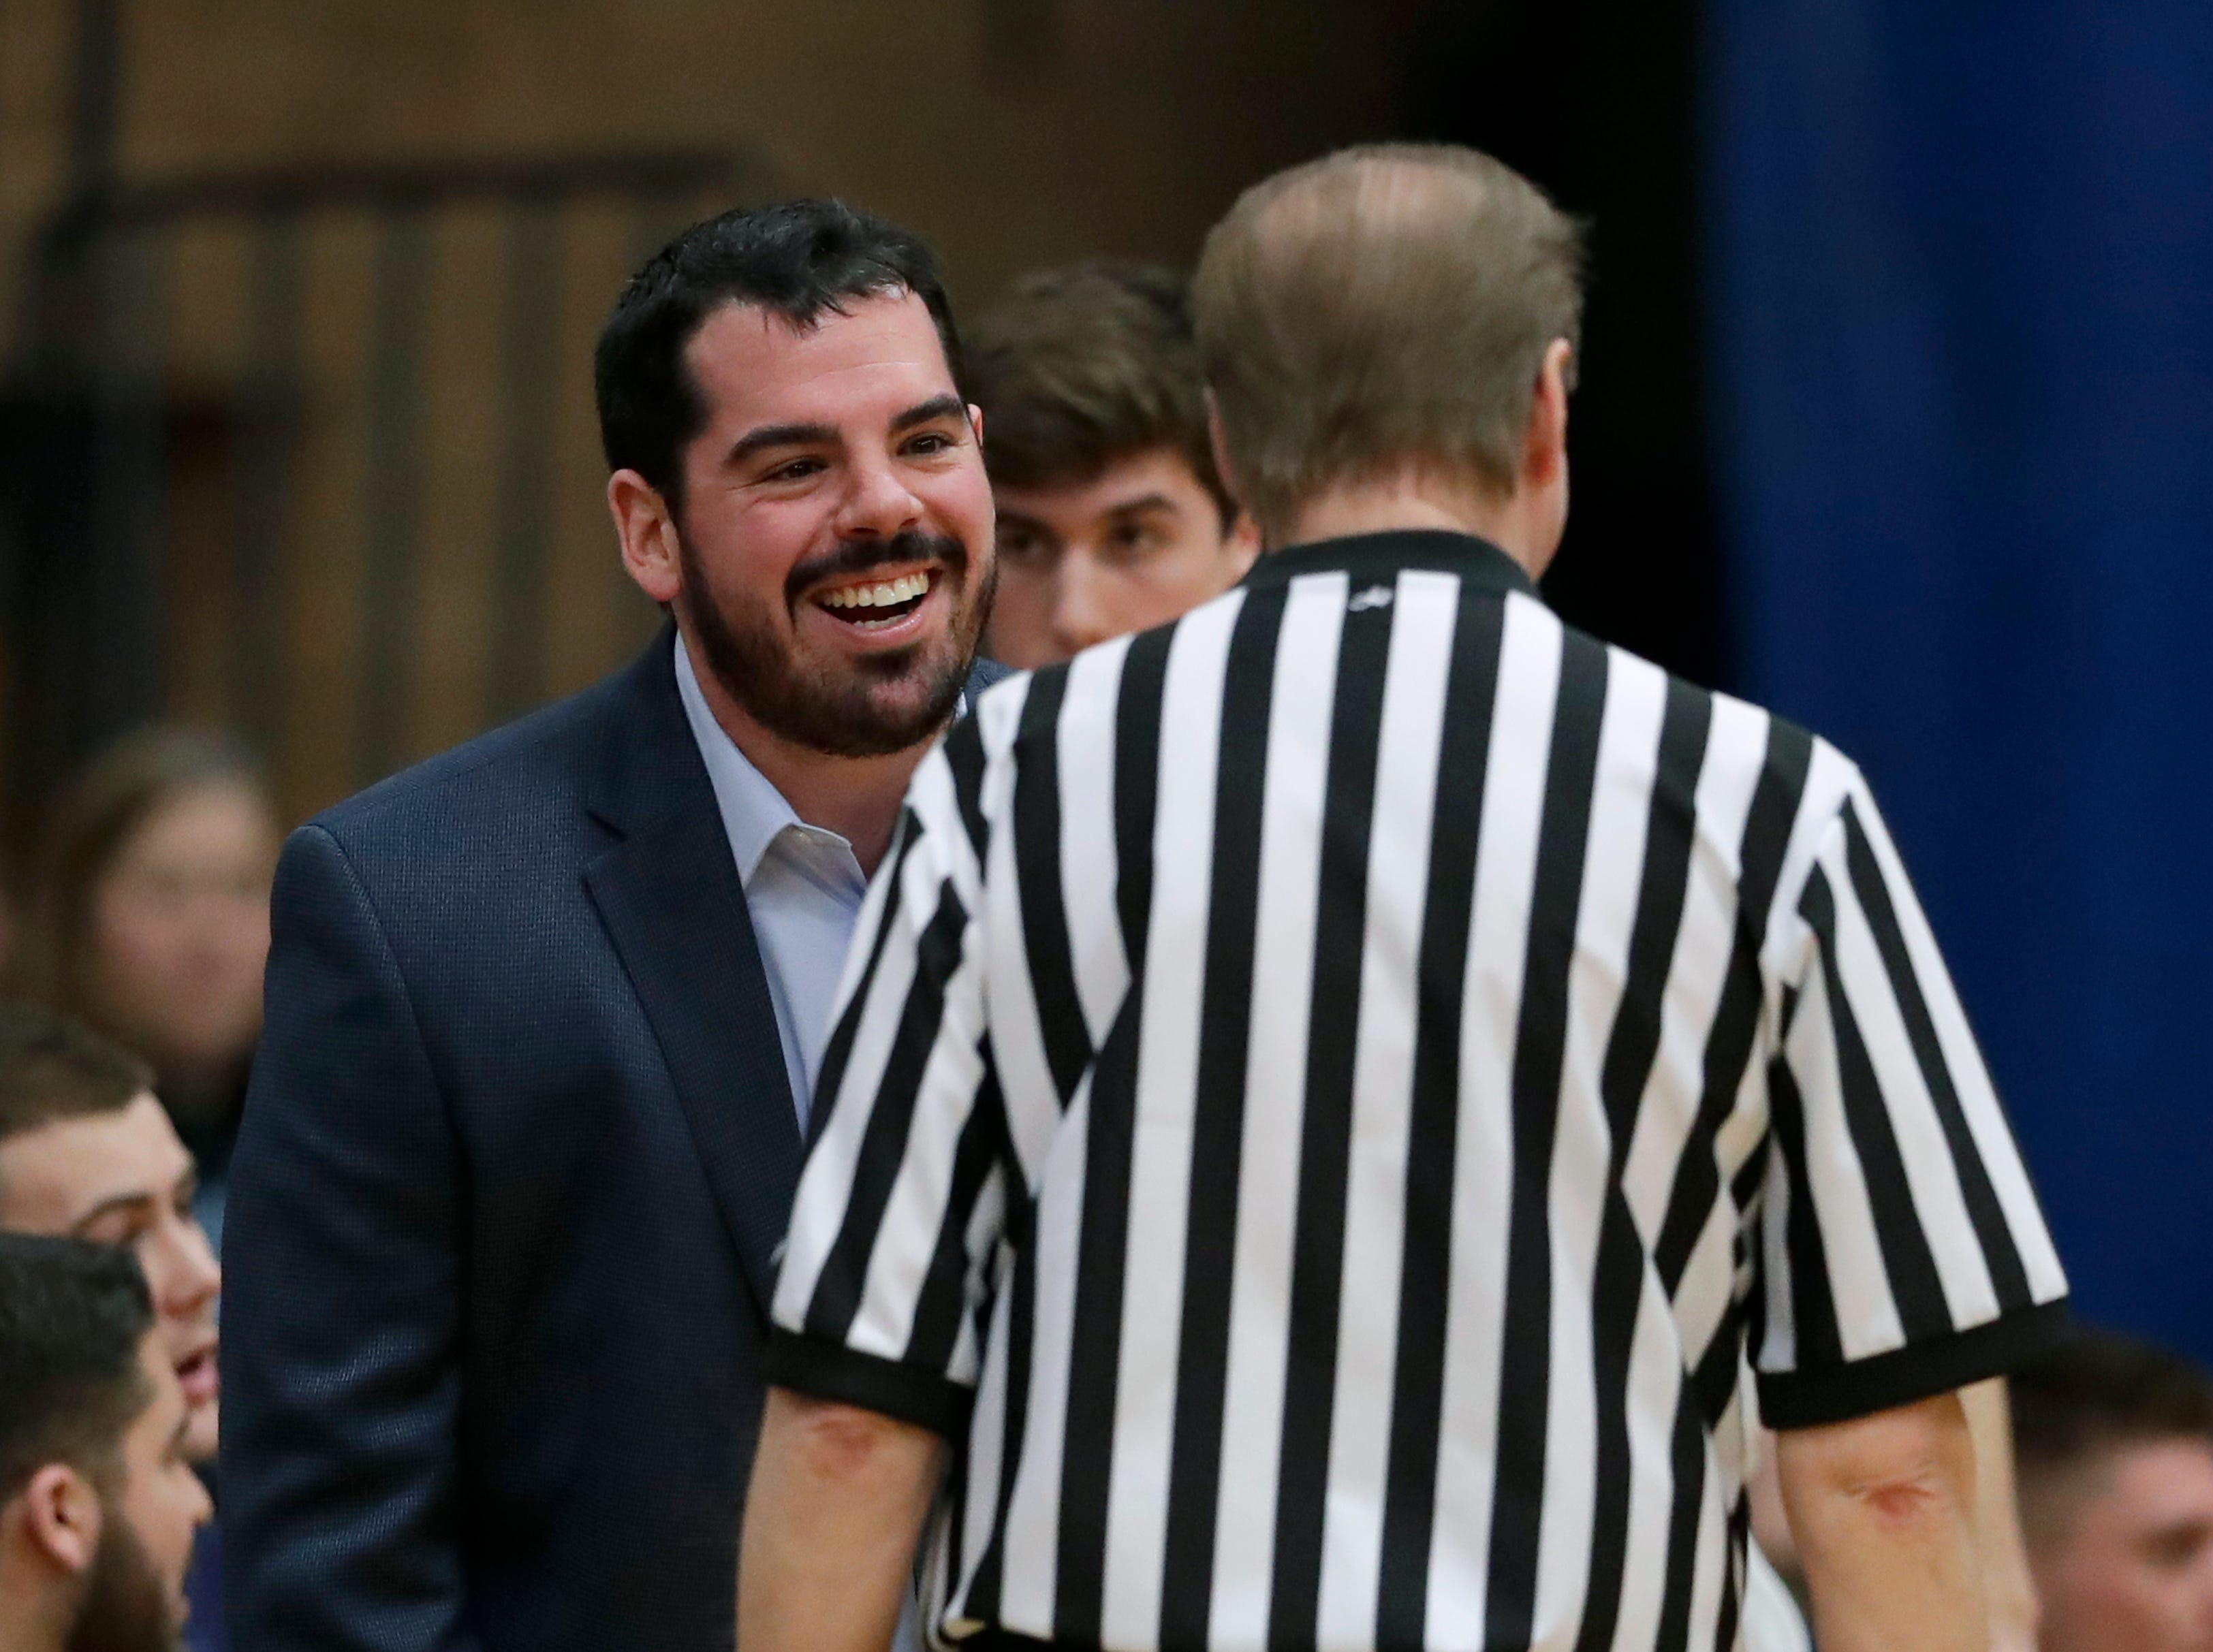 Little Chute High School's coach Jake VanRoy talks with an official after a play against Wrightstown High School during their boys basketball game Friday, February 1, 2019, in Little Chute, Wis. 